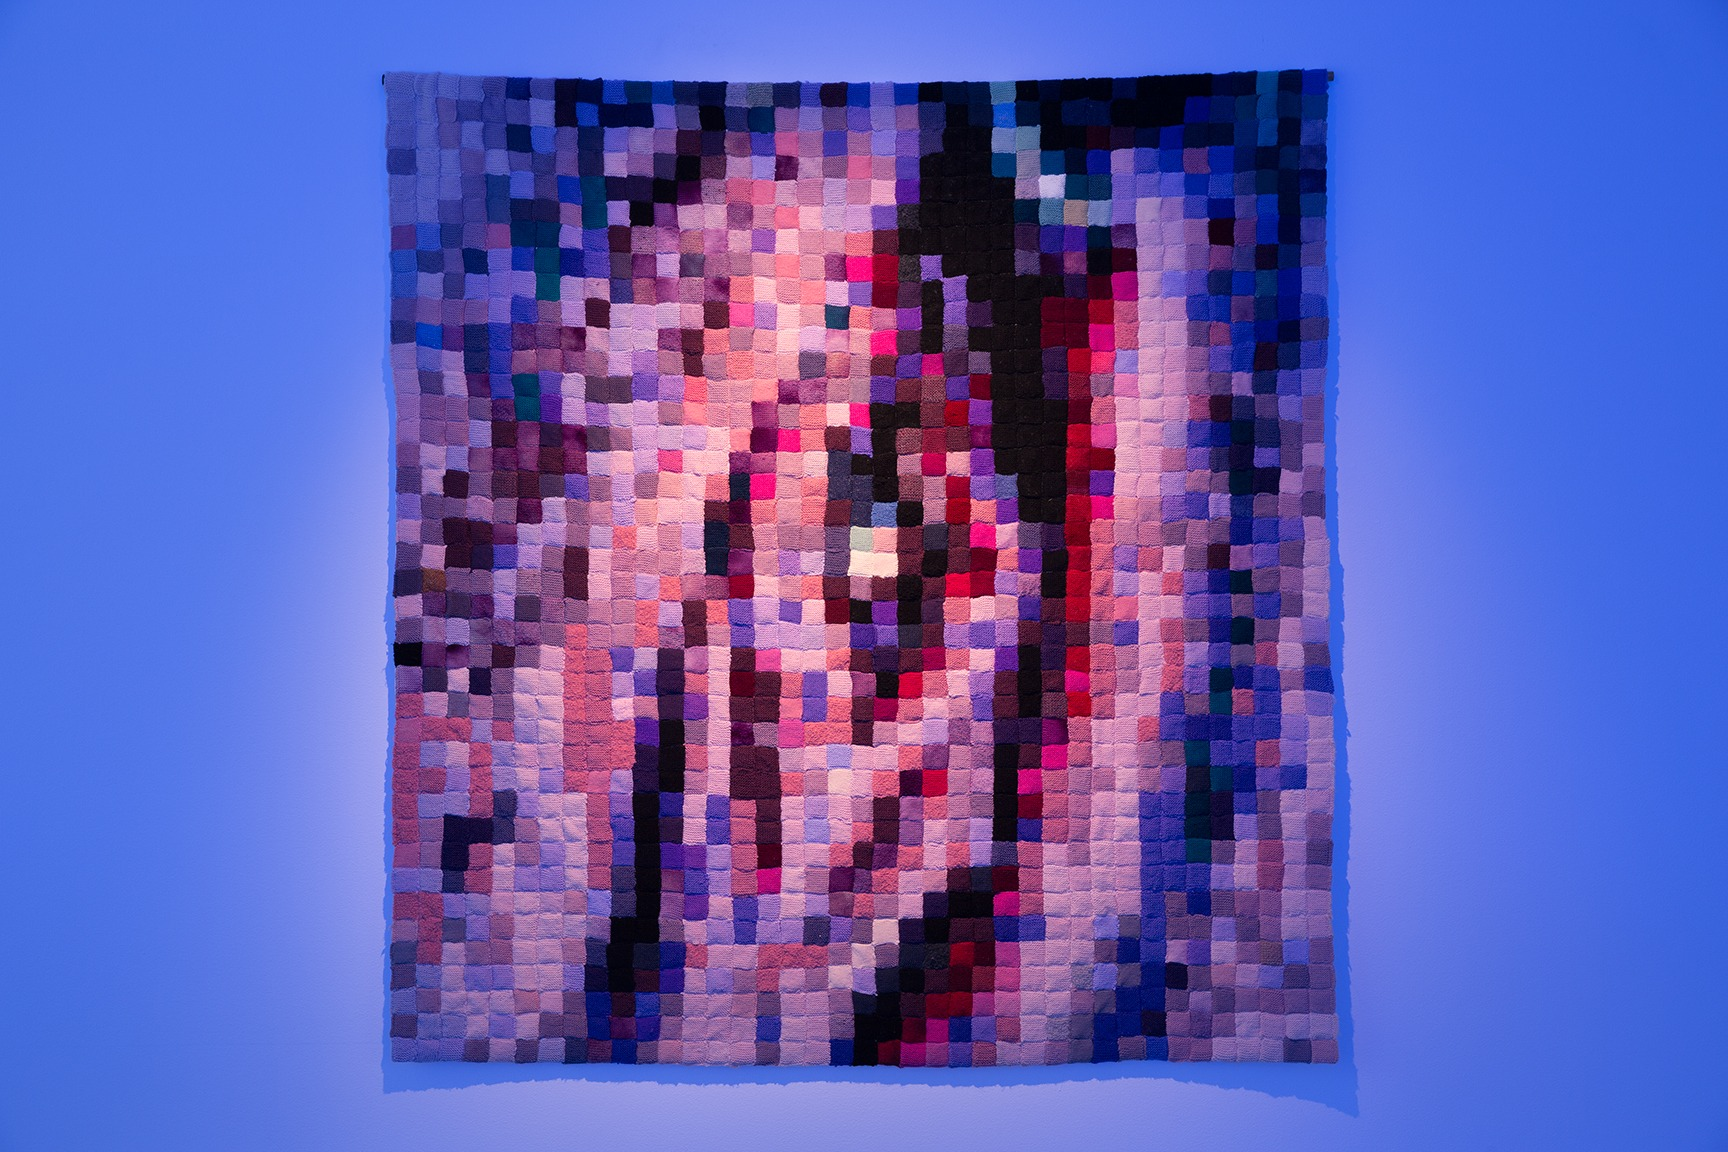 Laura Jordan, Pixelated Clitoris 2000, wool. Photo by Simon Hewson